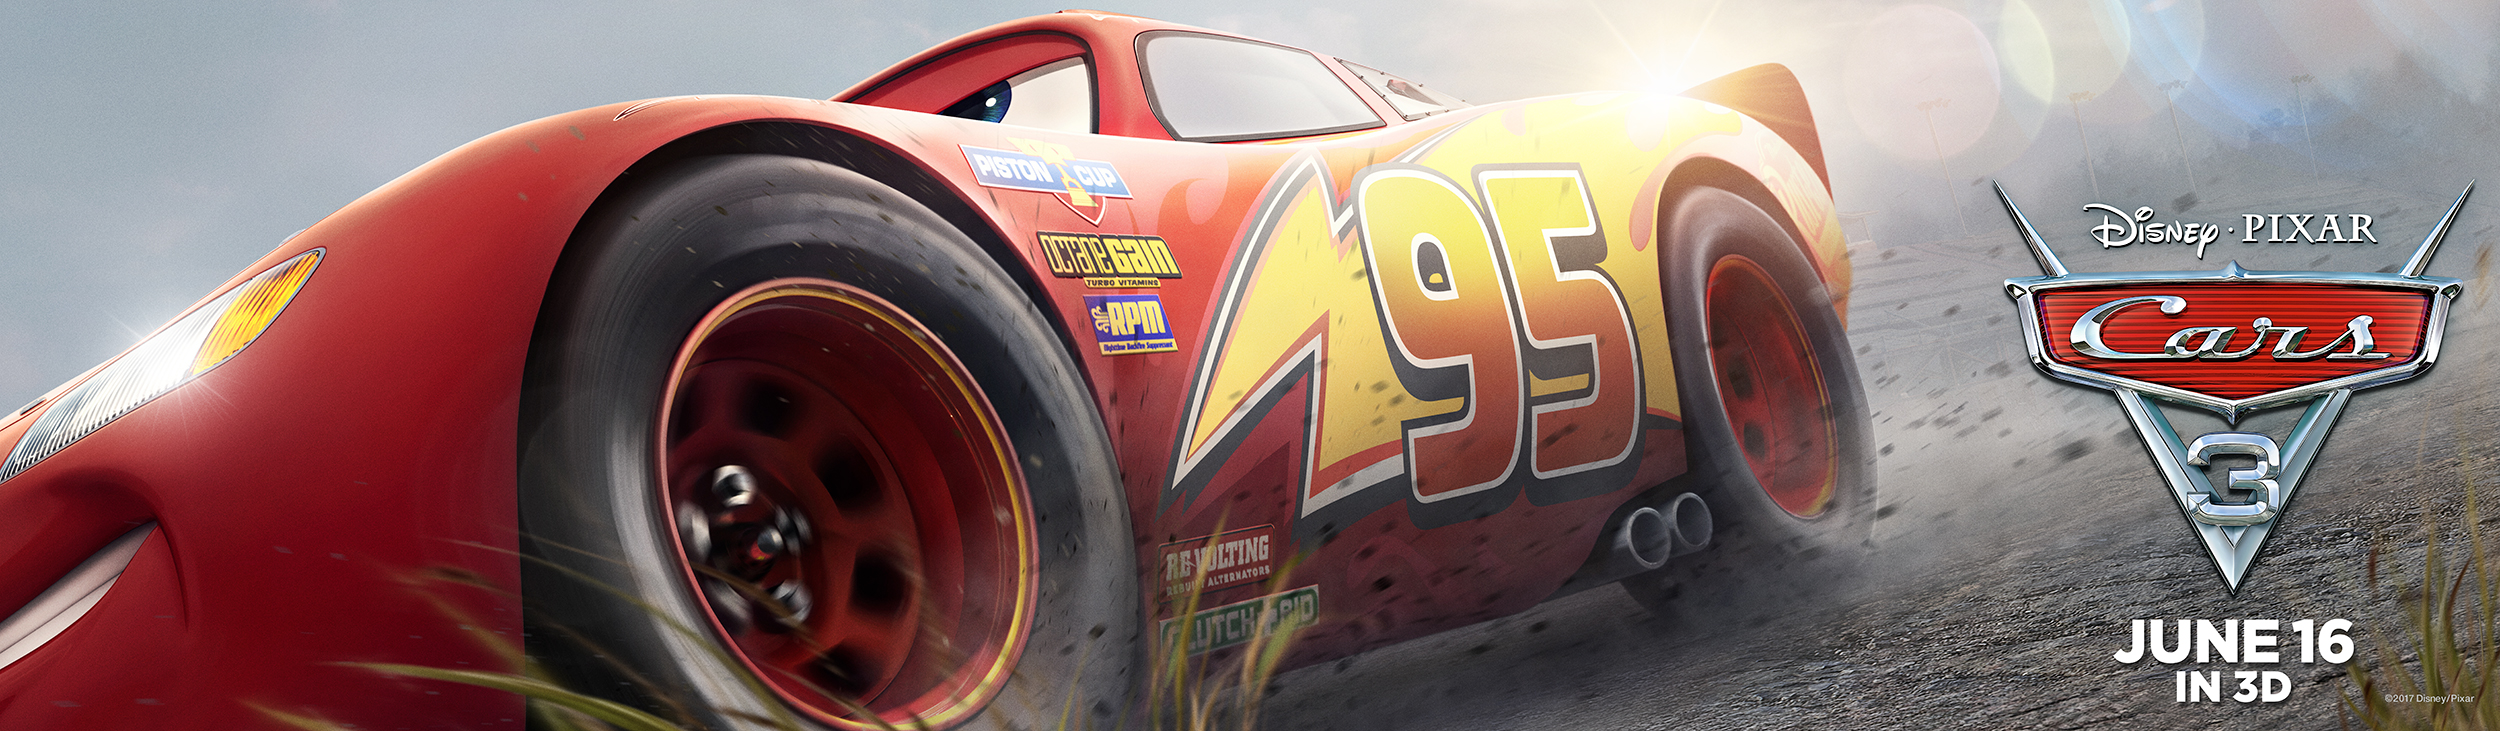 Cars 3 | McQueen Billboard Concept, Finishing & Illustration